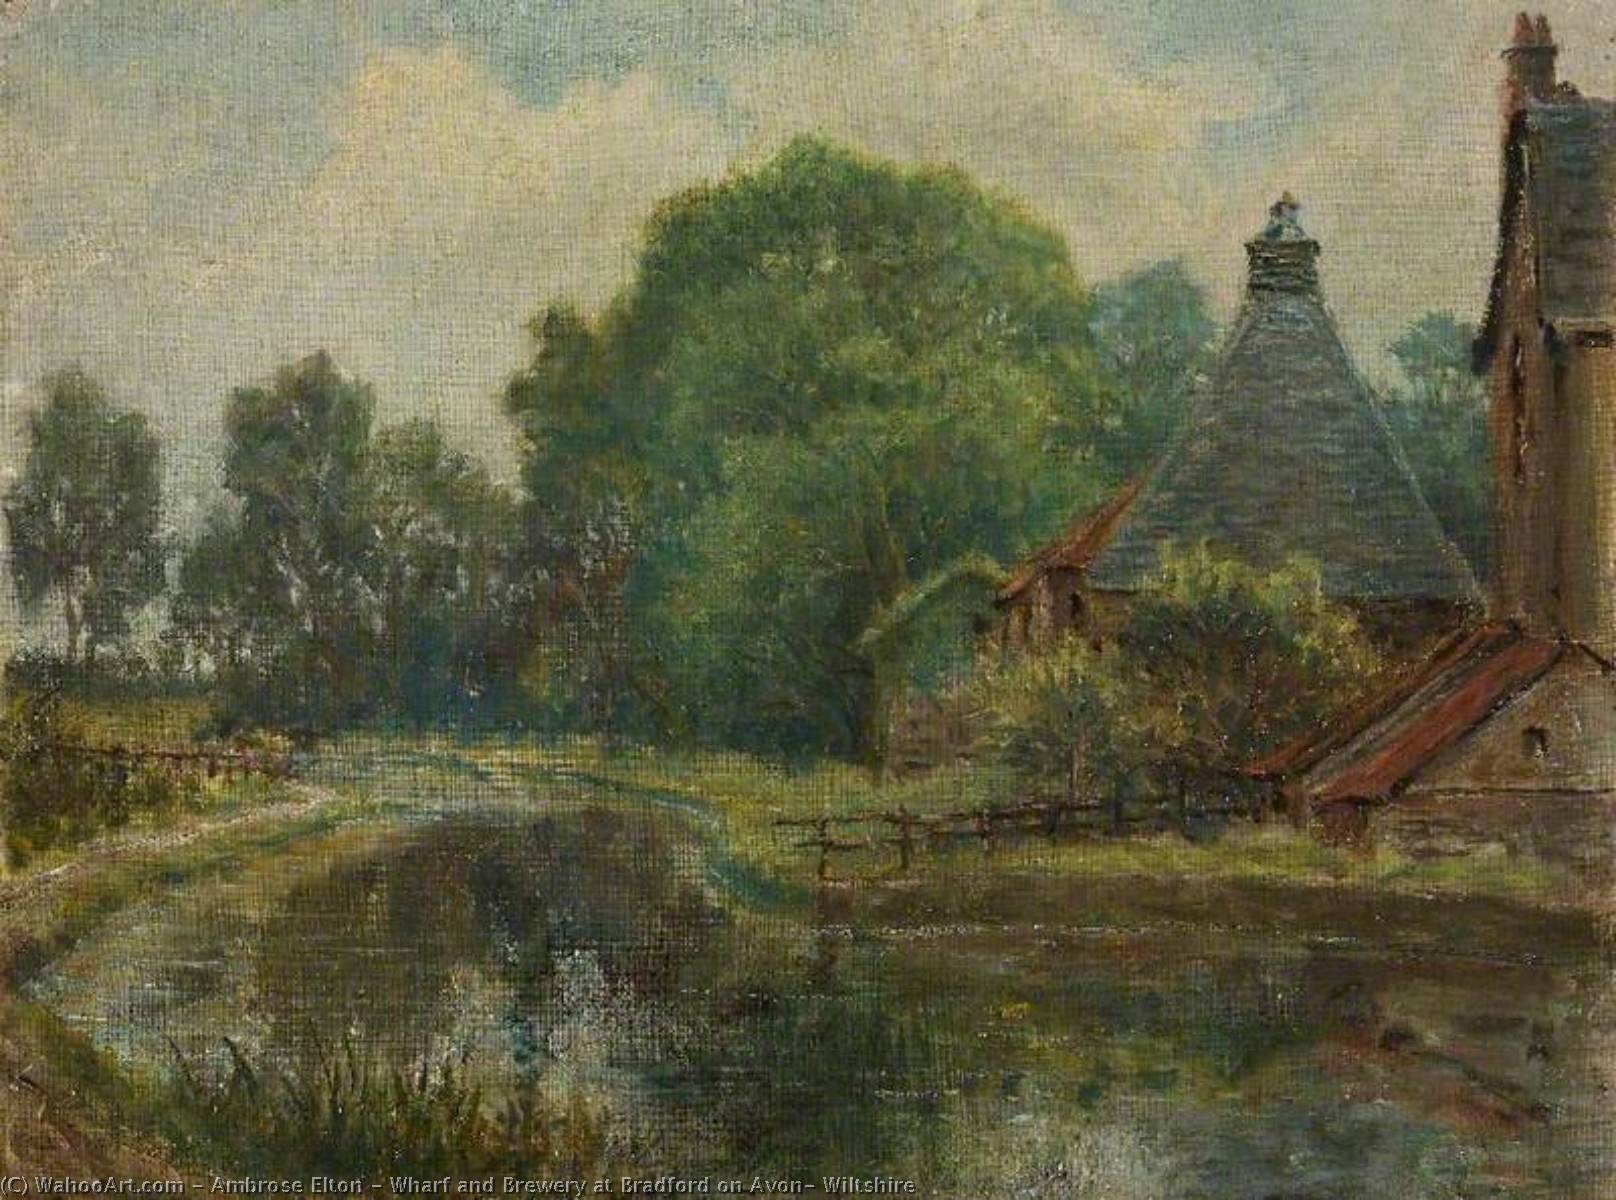 Order Museum Quality Reproductions : Wharf and Brewery at Bradford on Avon, Wiltshire by Ambrose Elton | WahooArt.com